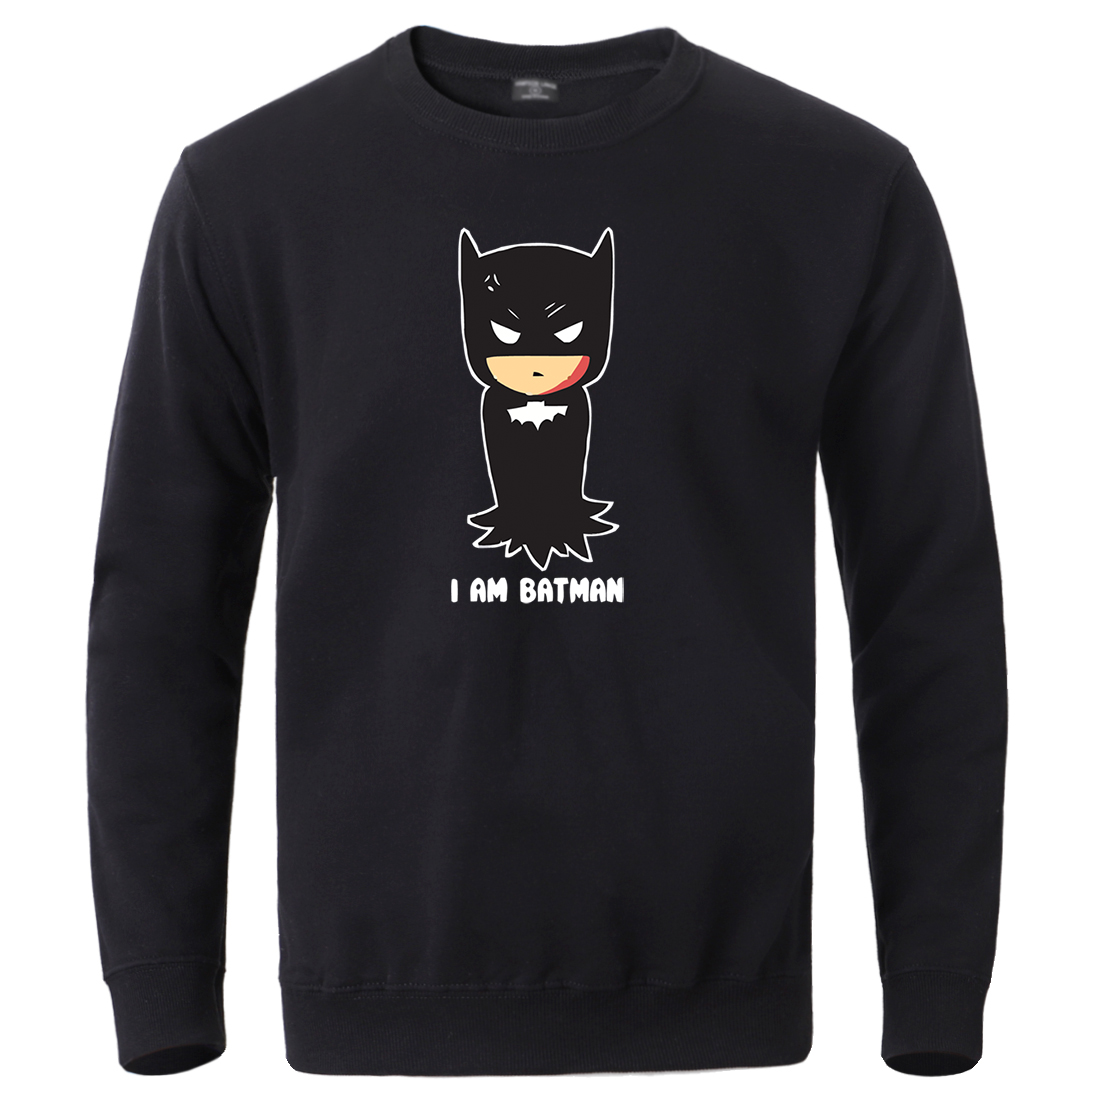 Superman I'm Batman Print Sweatshirts Male Winter Casual Tracksuit Fleece Warm Crewneck Pullover Hip Hop Loose Casual Sportswear